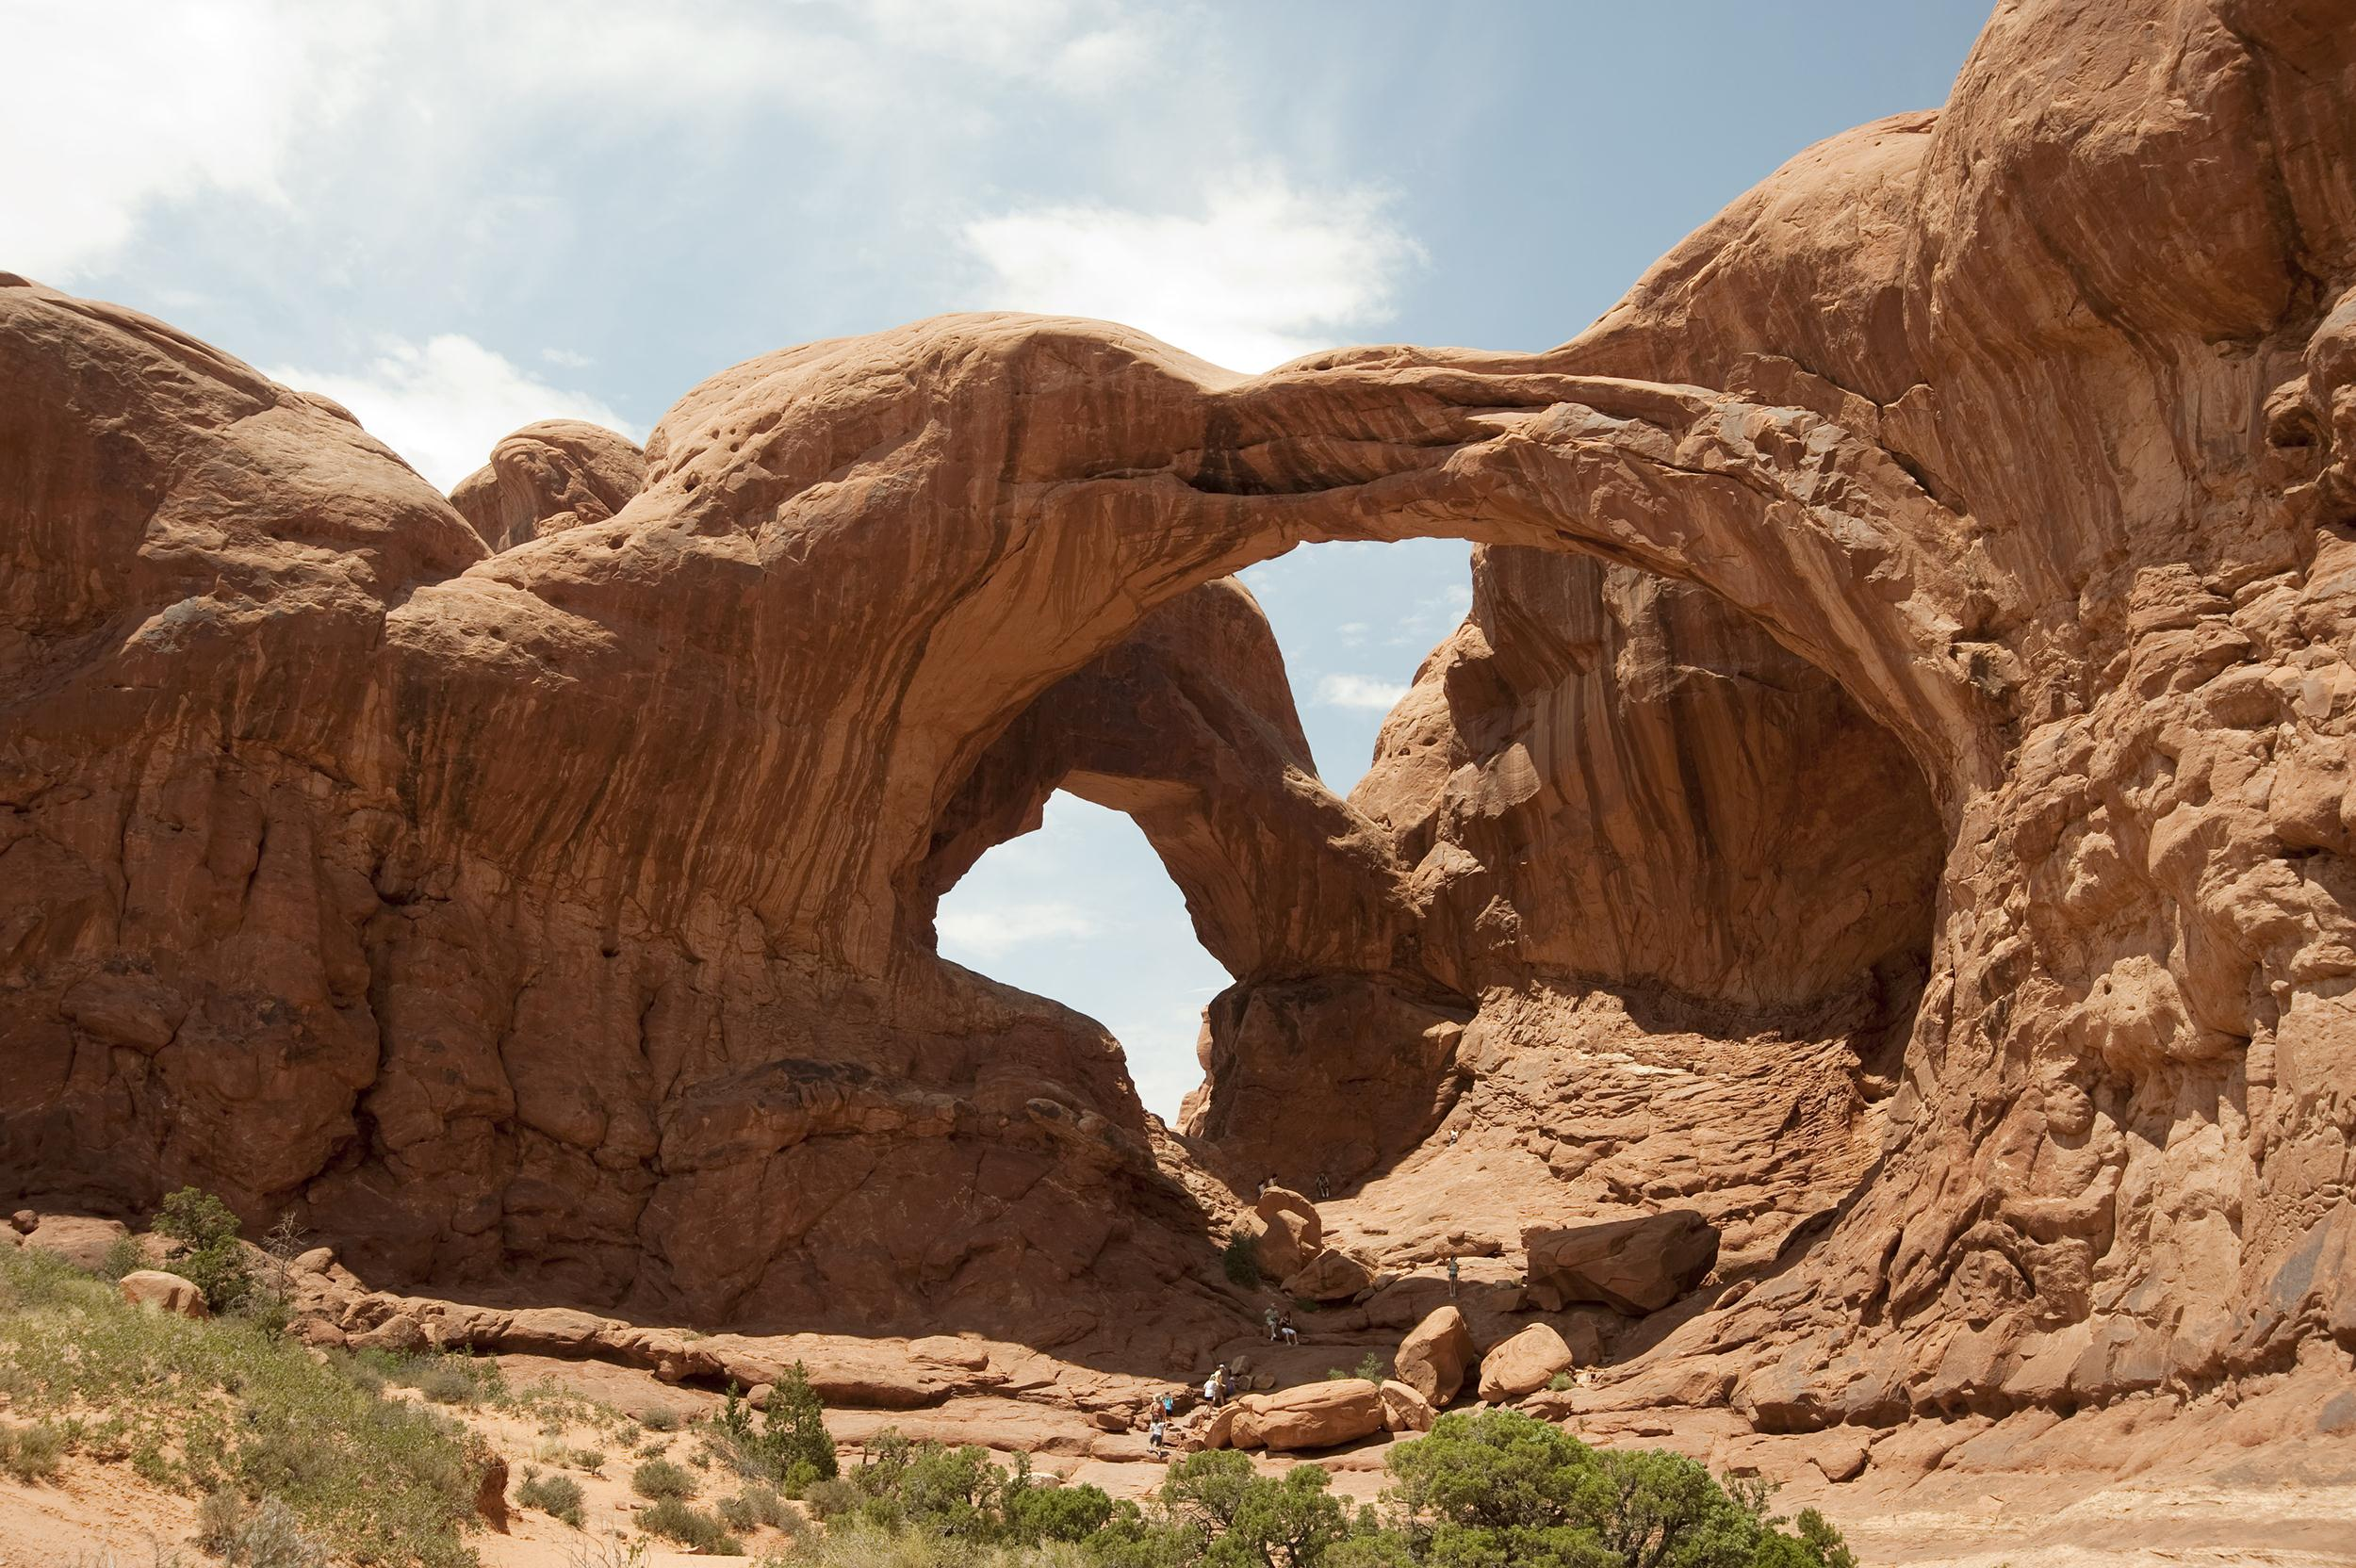 Image: Double arch at Arches National Park near Moab, Utah on July 4, 2011.